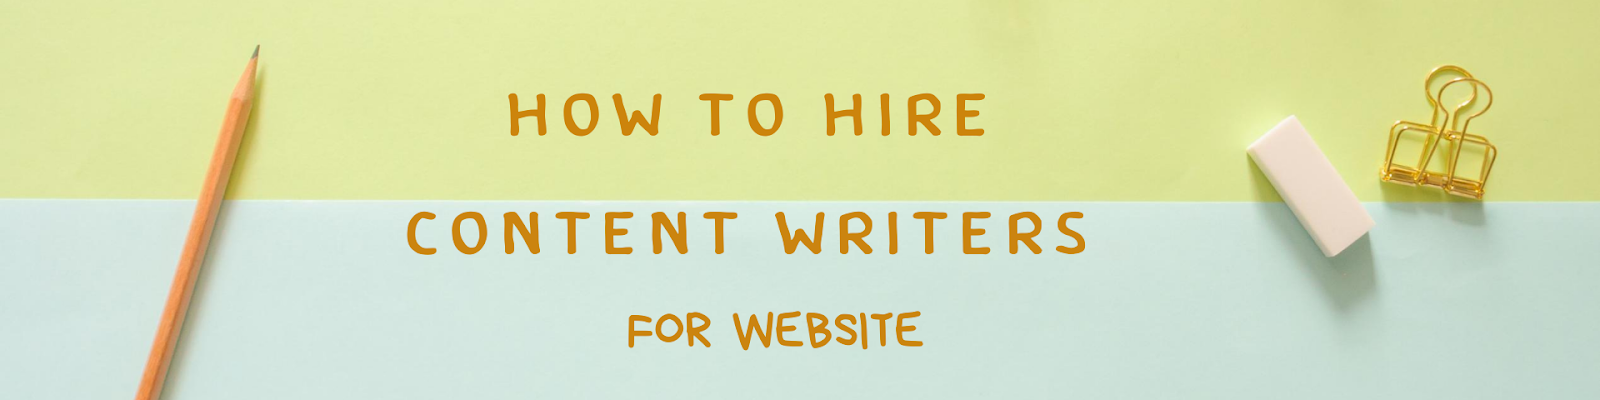 how to hire content writers for my website